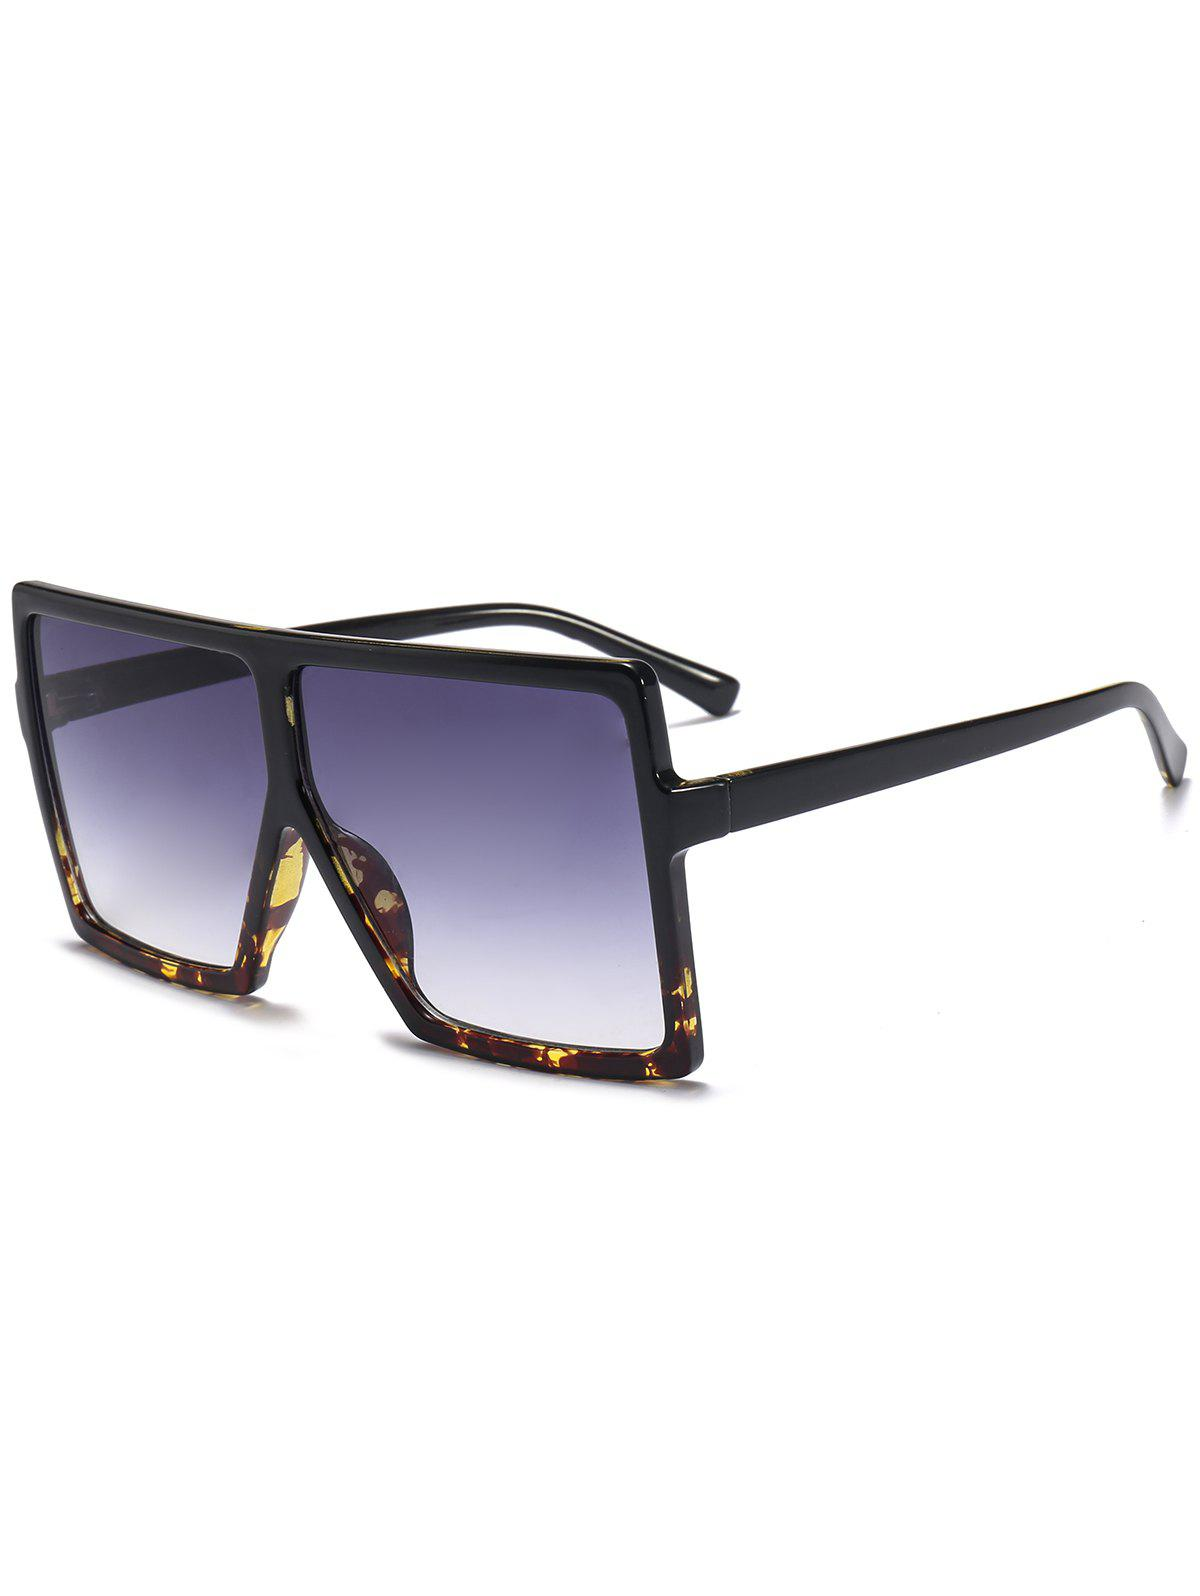 Oversized Square Full Frame SunglassesACCESSORIES<br><br>Color: BLACK+LEOPARD C2; Group: Adult; Gender: For Unisex; Style: Fashion; Shape: Square; Lens material: Resin; Frame material: Other; Frame Color: Multi-color; Lens height: 6.4CM; Lens width: 6.8CM; Temple Length: 14CM; Nose: 1.2CM; Frame Length: 14.9CM; Weight: 0.0900kg; Package Contents: 1 x Sunglasses;